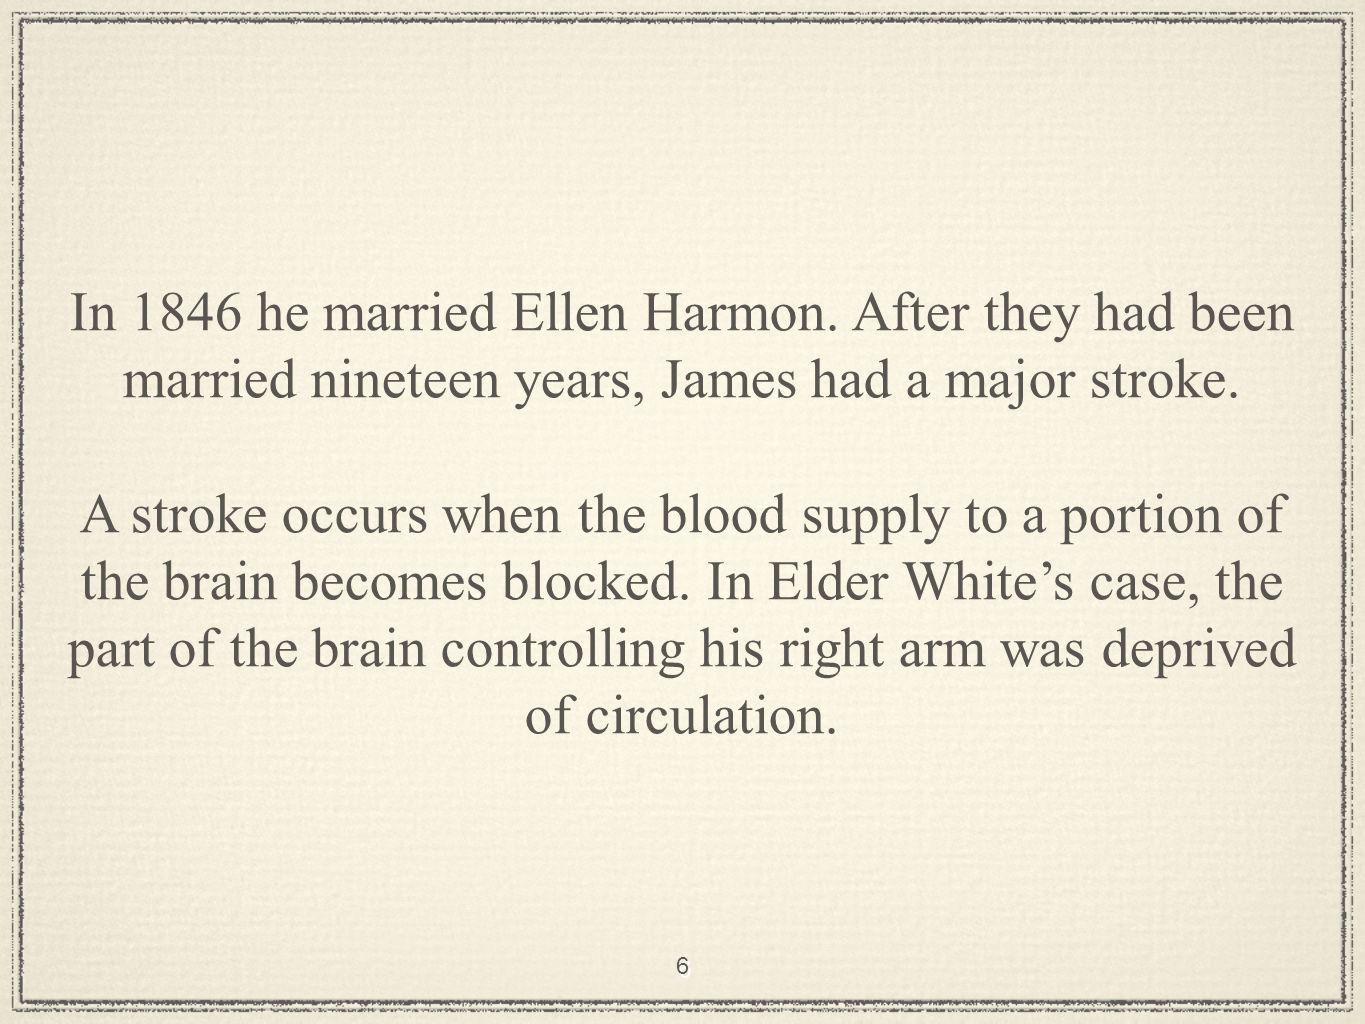 6 In 1846 he married Ellen Harmon.